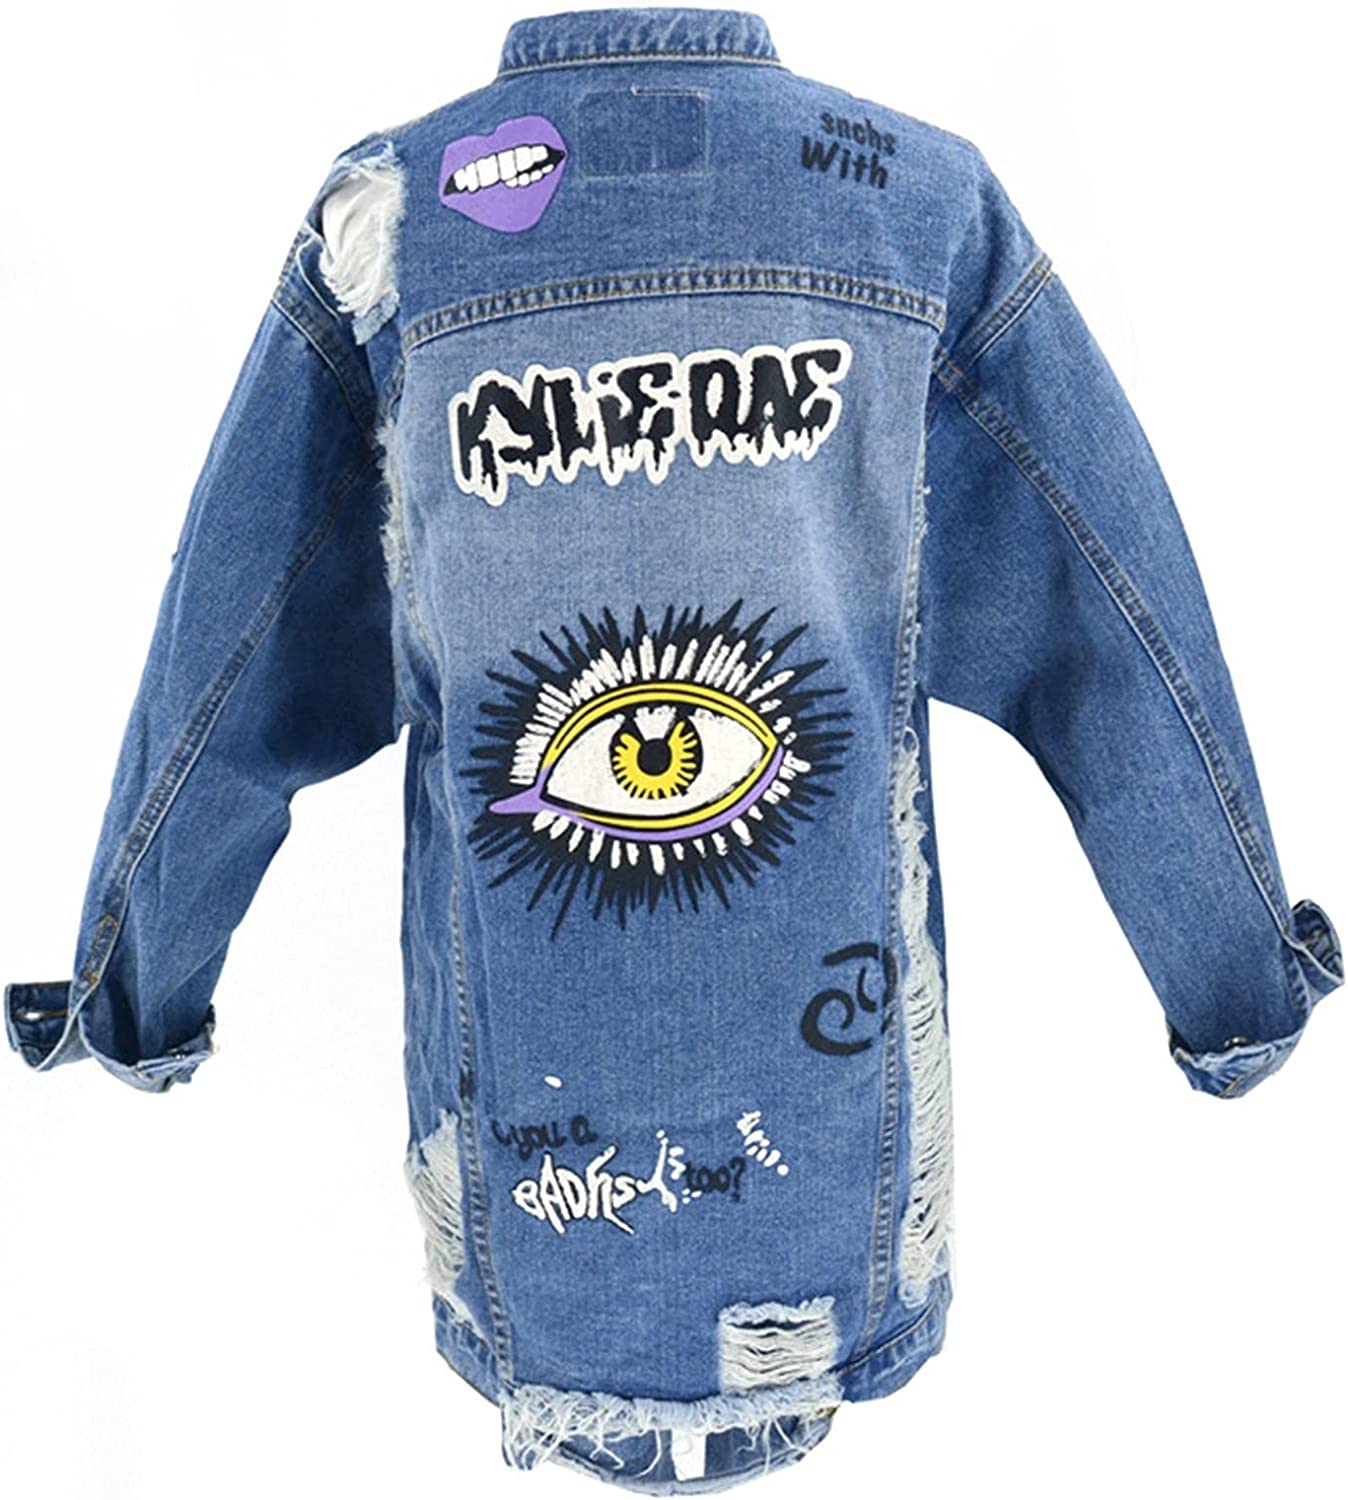 Women's Denim Jacket Fashion Casual Long Ripped Wild Outdoor Denim Jacket (Color : Blue, Size : X-Small)